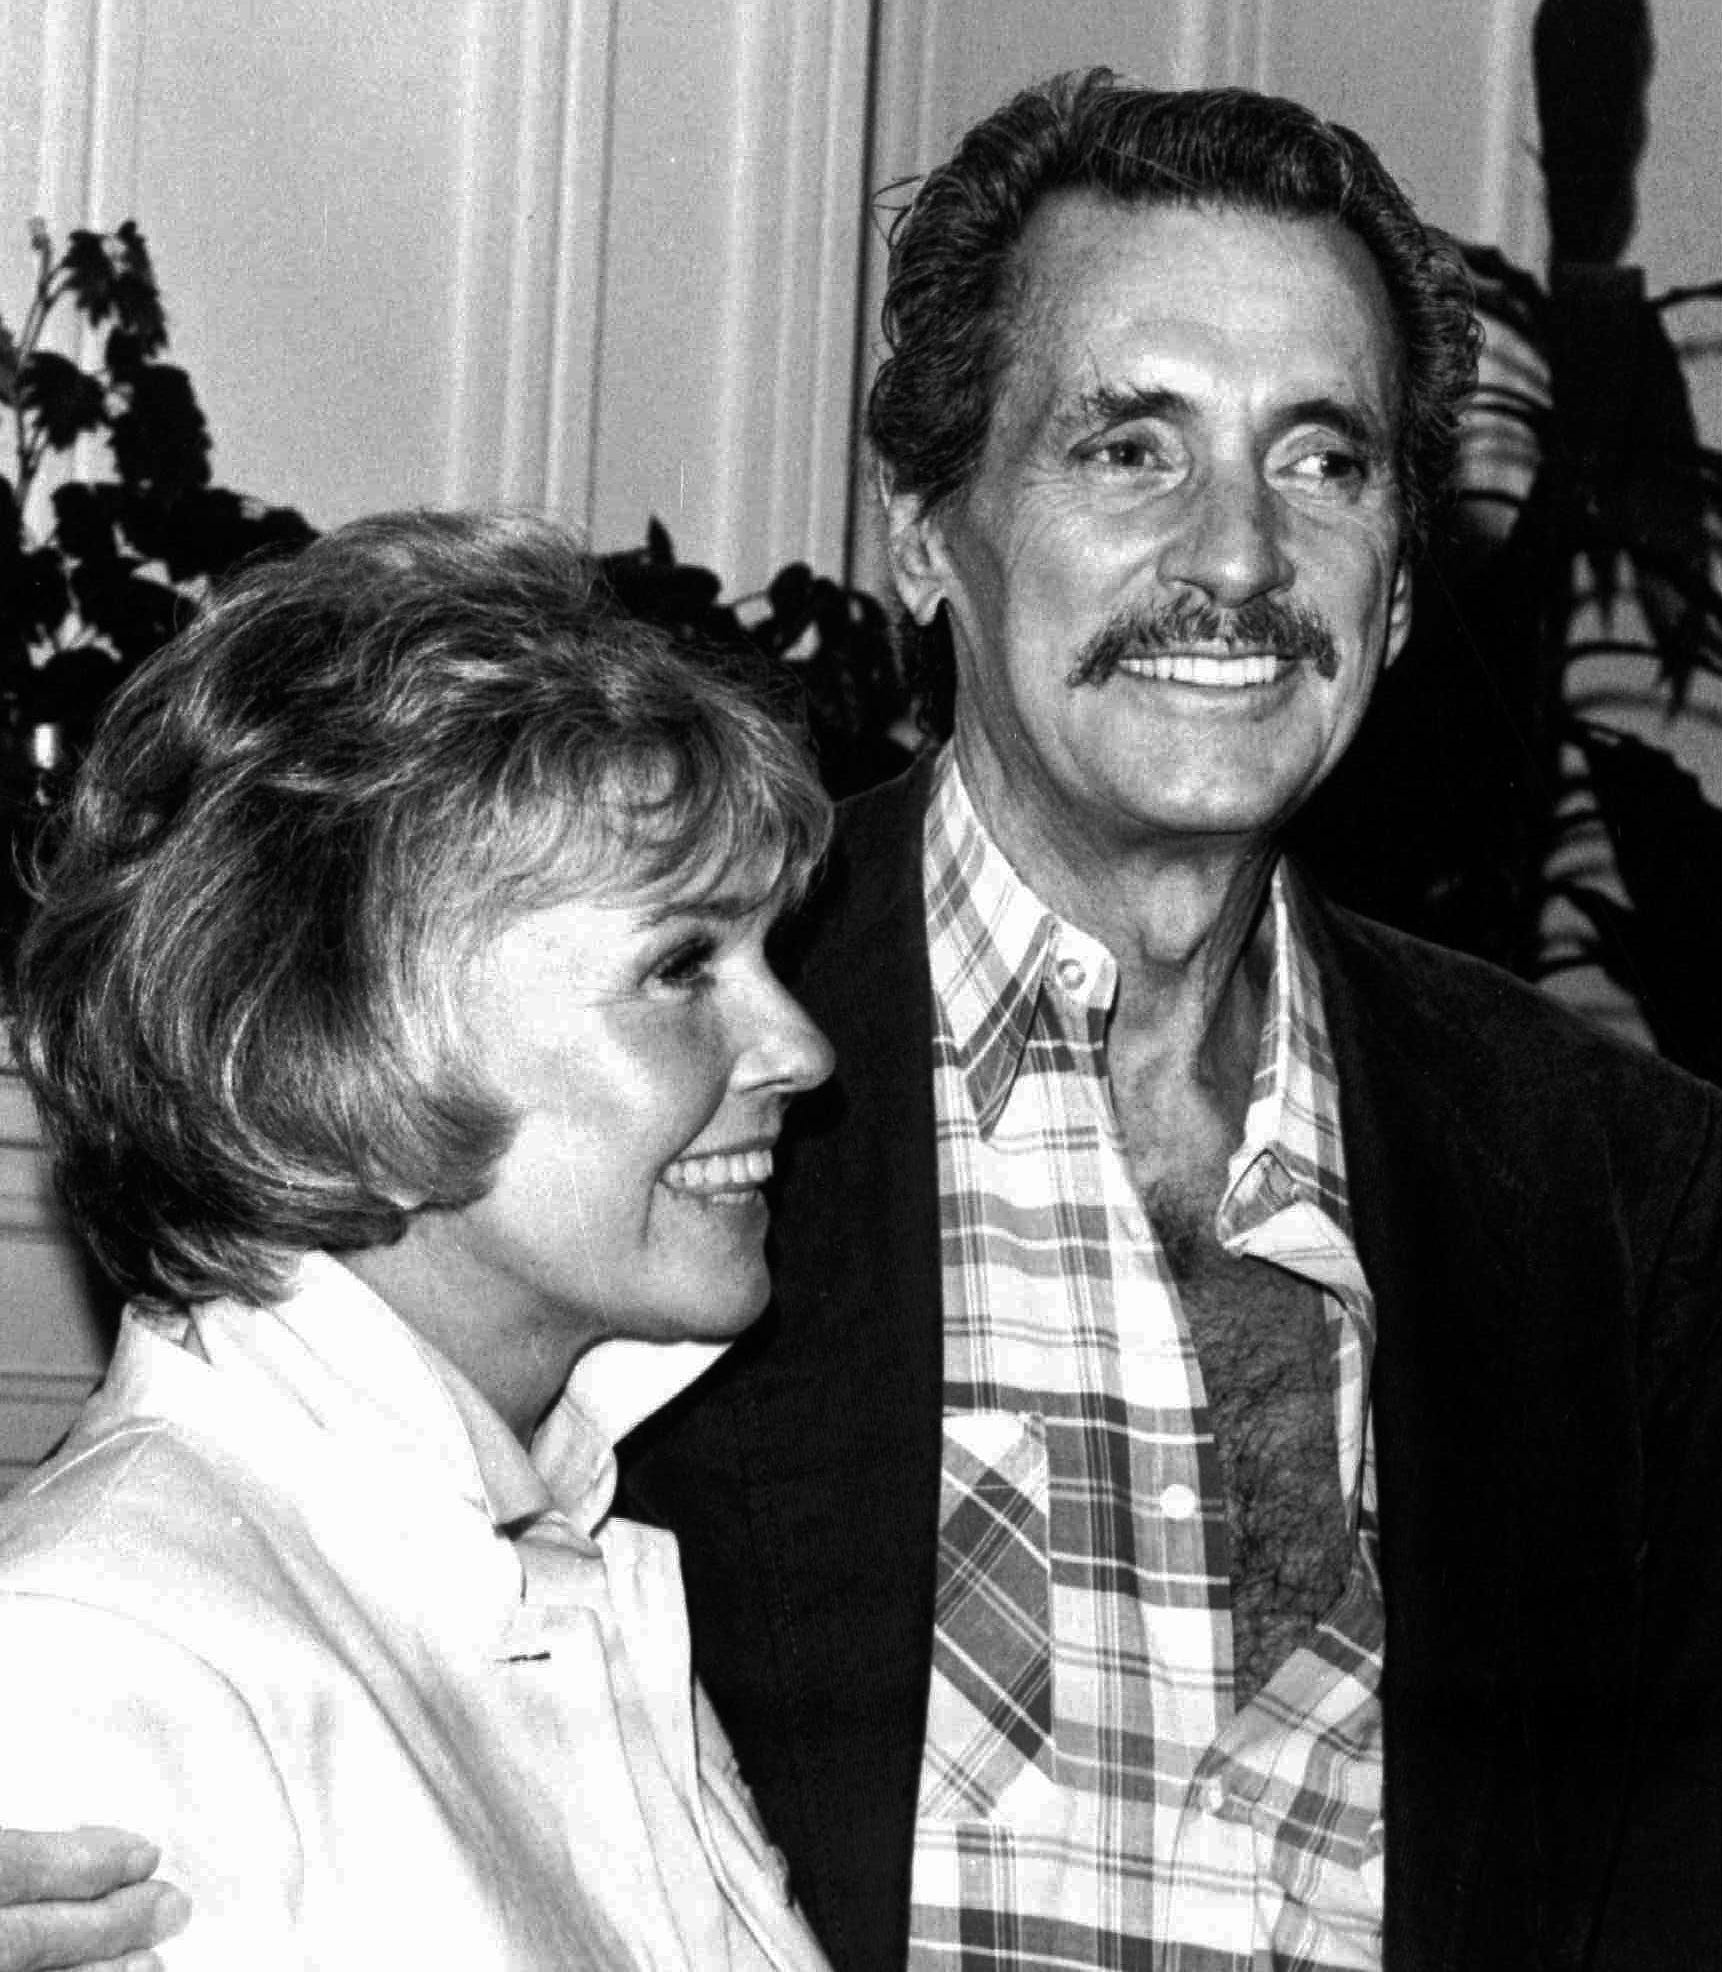 Rock Hudson joined his friend Doris Day on July 18,1985 in Monterey, Calif. His appearance shocked the world. He died later that year.